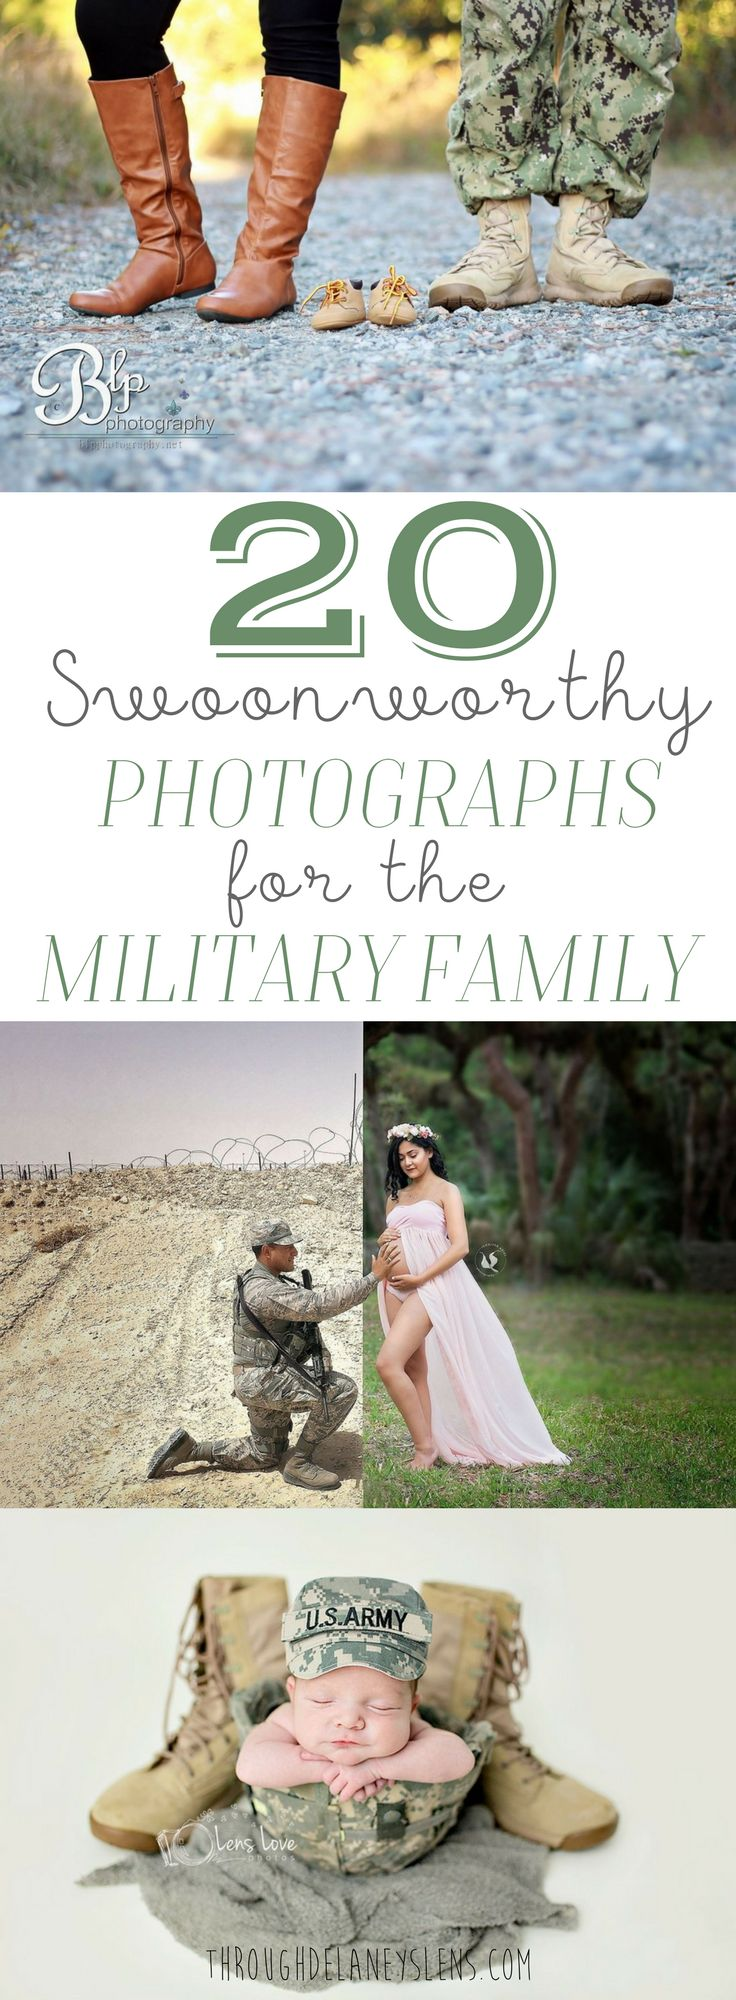 There is something extra special about military photographs, click here to see 20 beautifully themed pregnancy announcement, maternity, + newborn photos